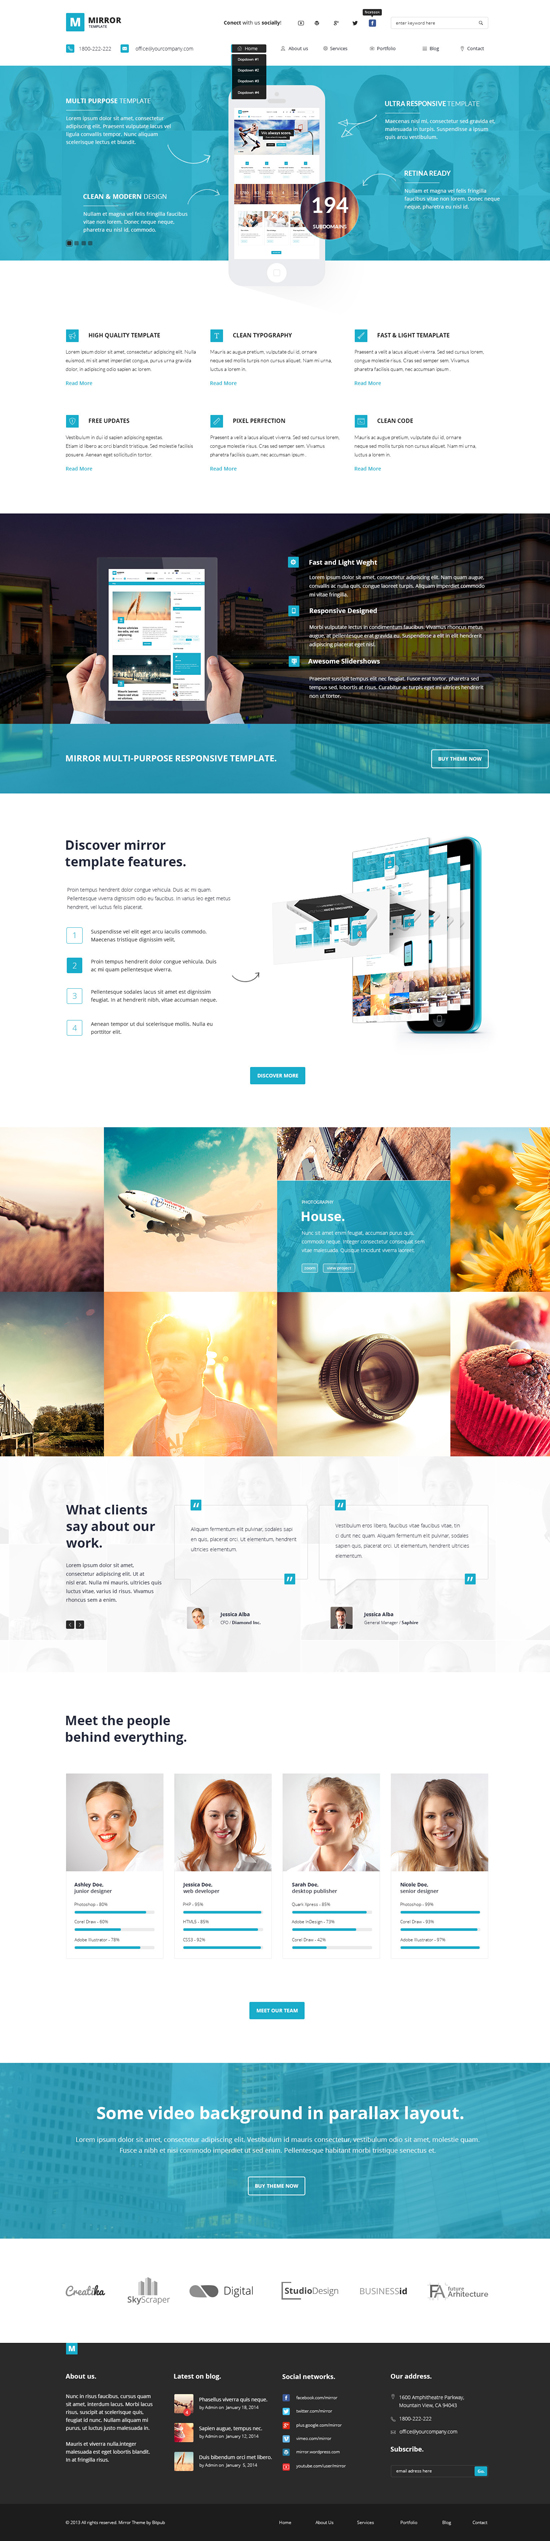 MIRROR - Multipurpose Business PSD Template